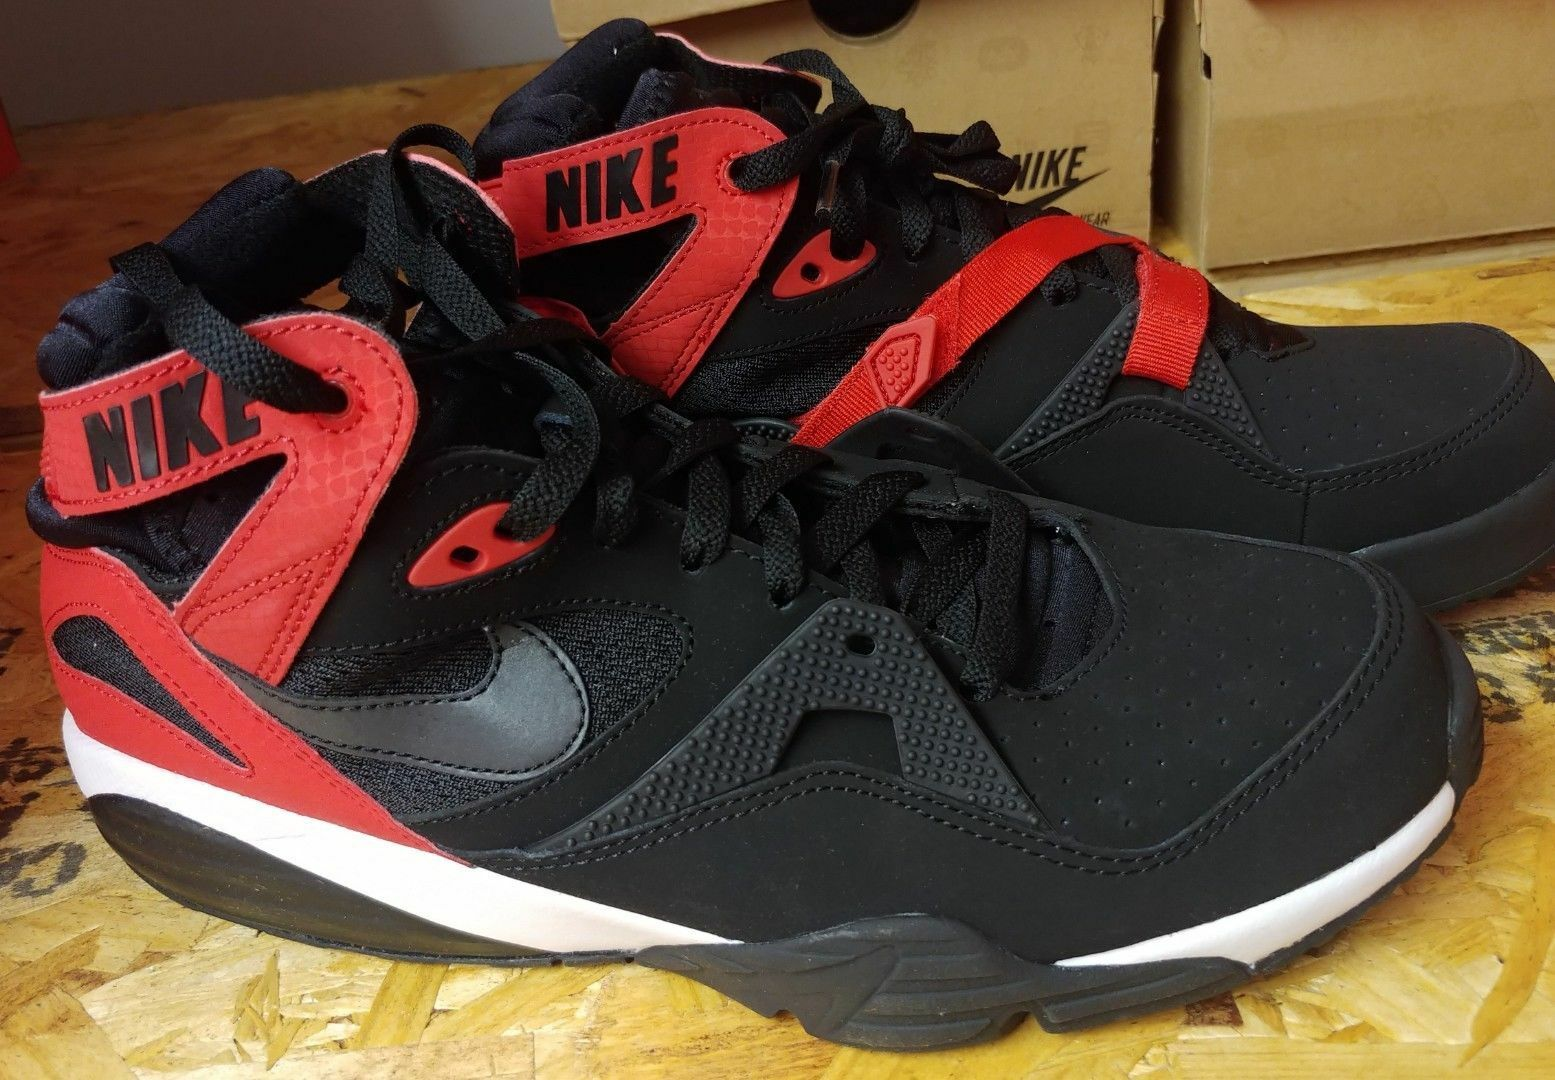 NEW 91 NIKE AIR TRAINER MAX 91 NEW 11.5 Black/Red/White 309748-008 Read Missing strap 225483